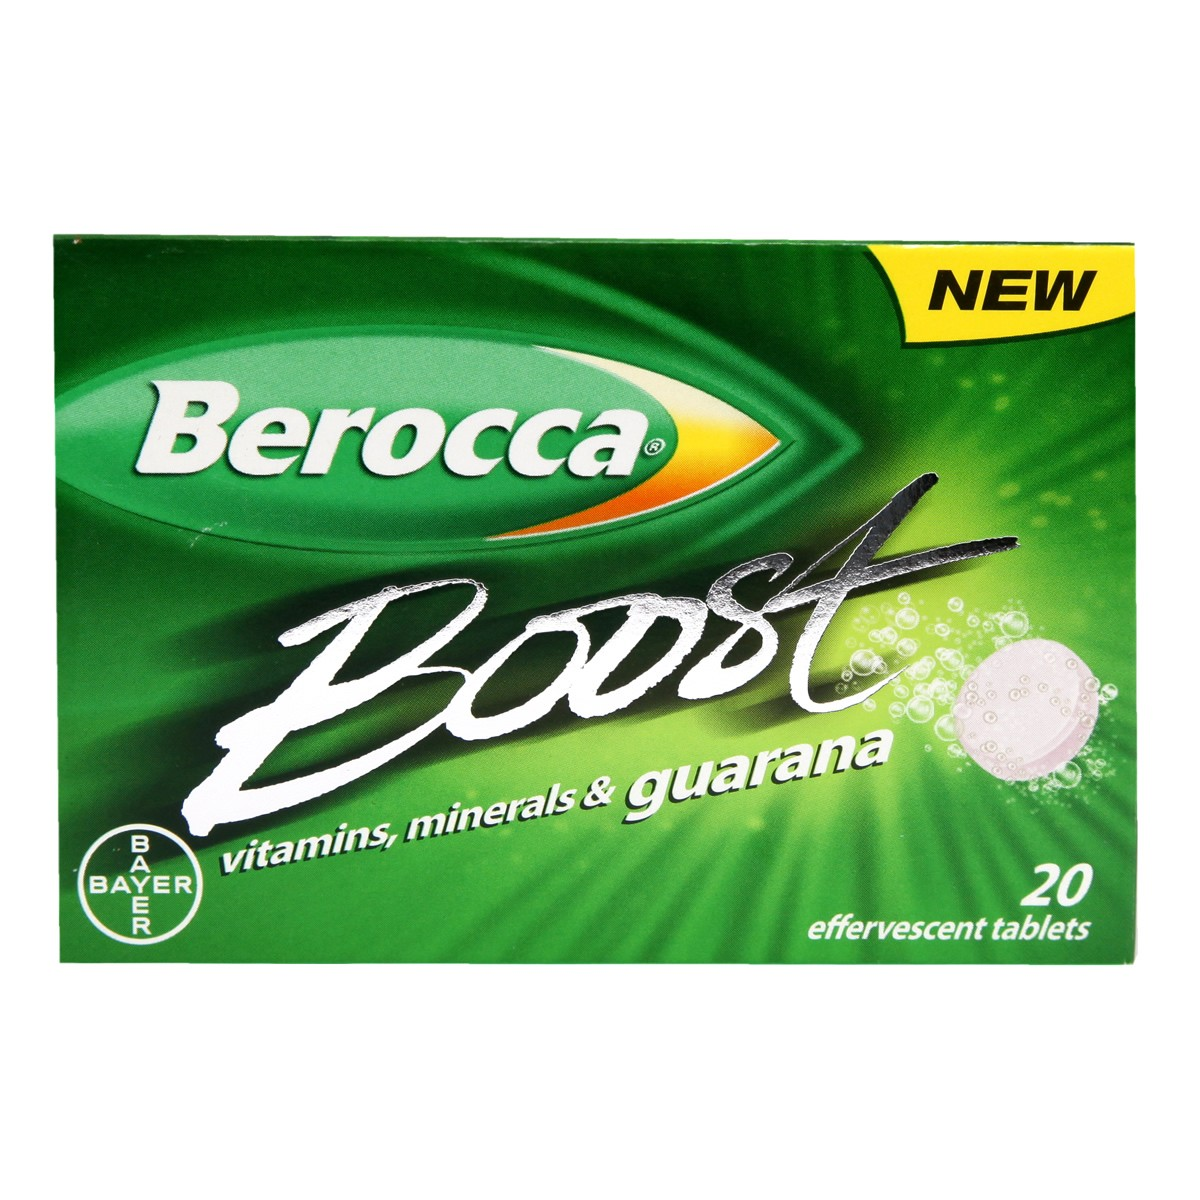 Berocca Boost Vitamins, Minerals & Guarana Effervescent Tablets